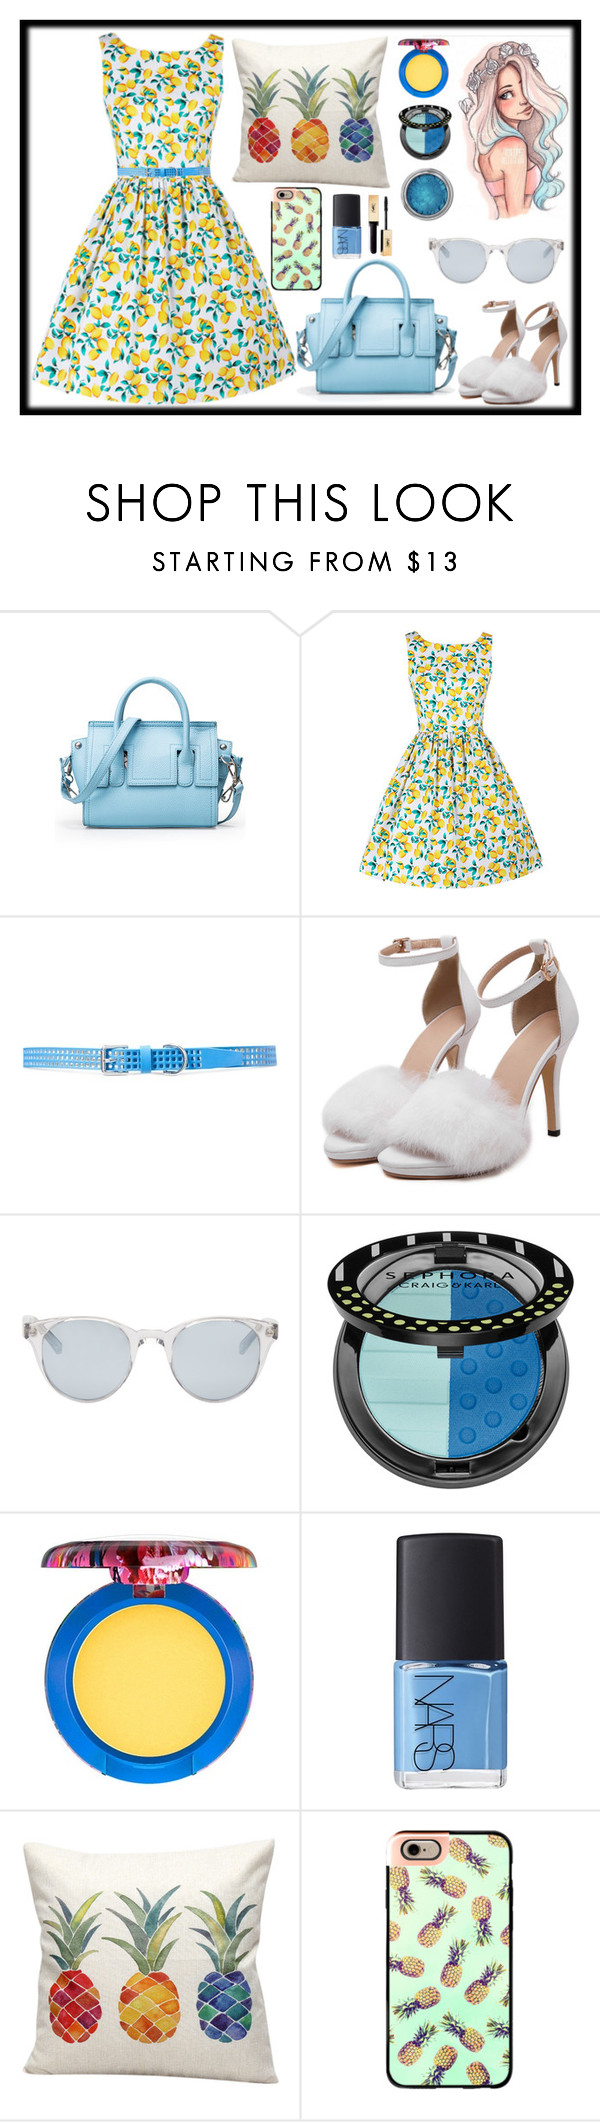 """""""LEMON & PINEAPPLE // itsybitsy62"""" by itsybitsy62 ❤ liked on Polyvore featuring Lauren Ralph Lauren, Sun Buddies, Sephora Collection, MAC Cosmetics, NARS Cosmetics and Casetify"""